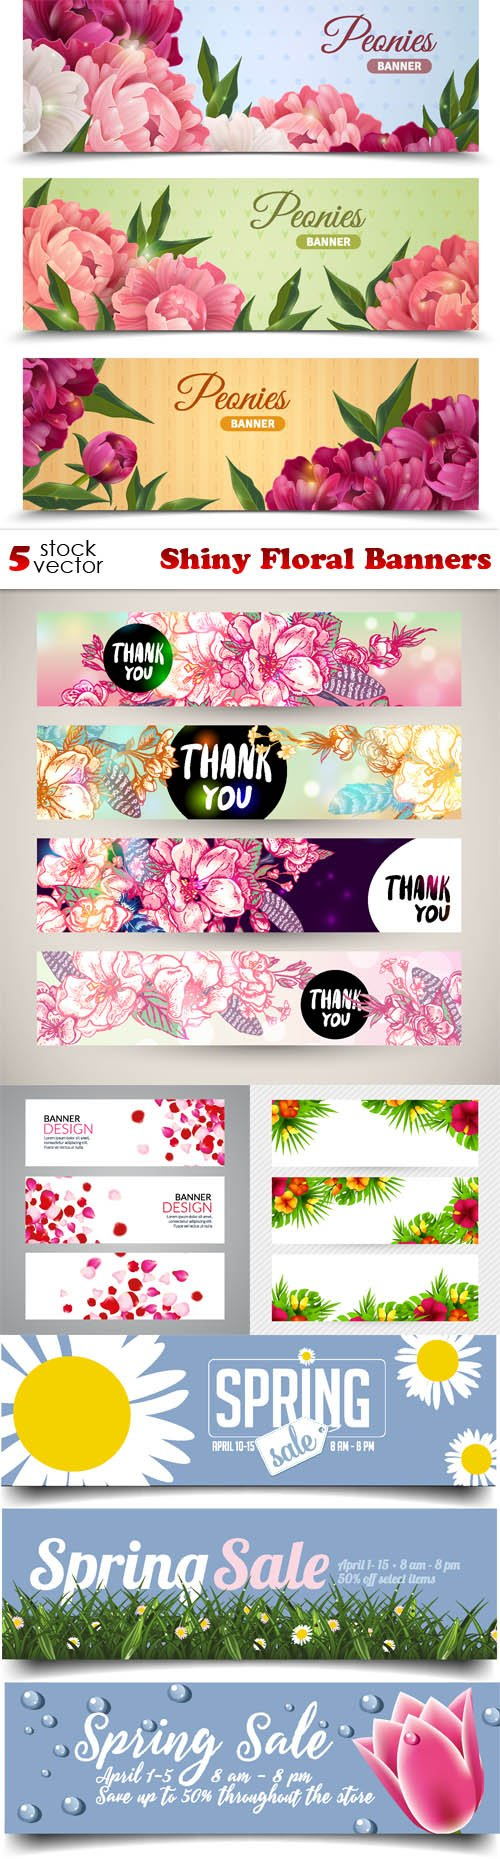 Vectors - Shiny Floral Banners